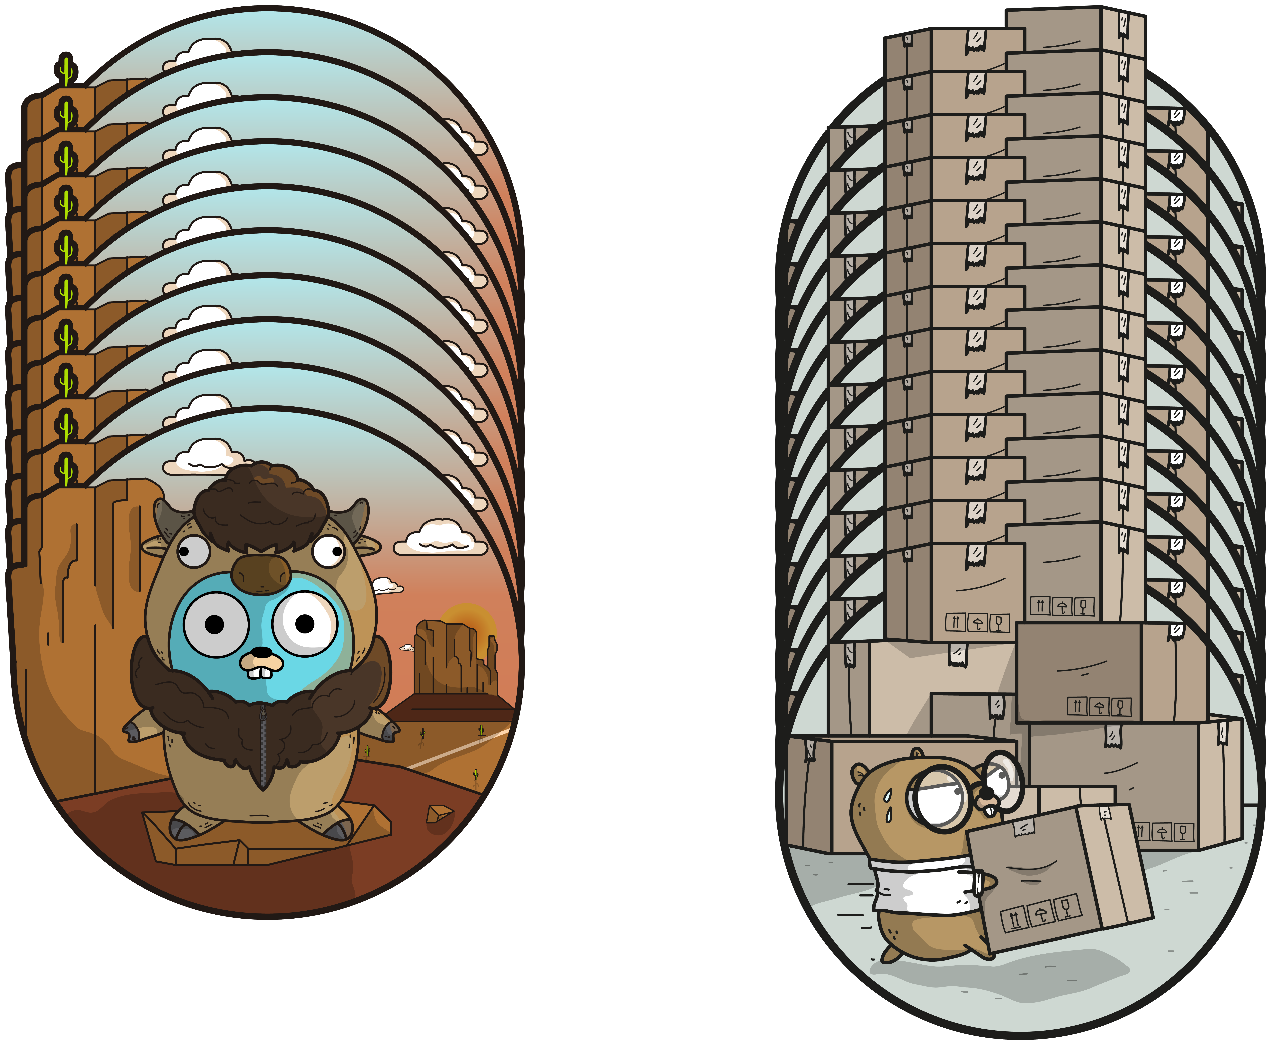 Many front end gophers to many backend gophers